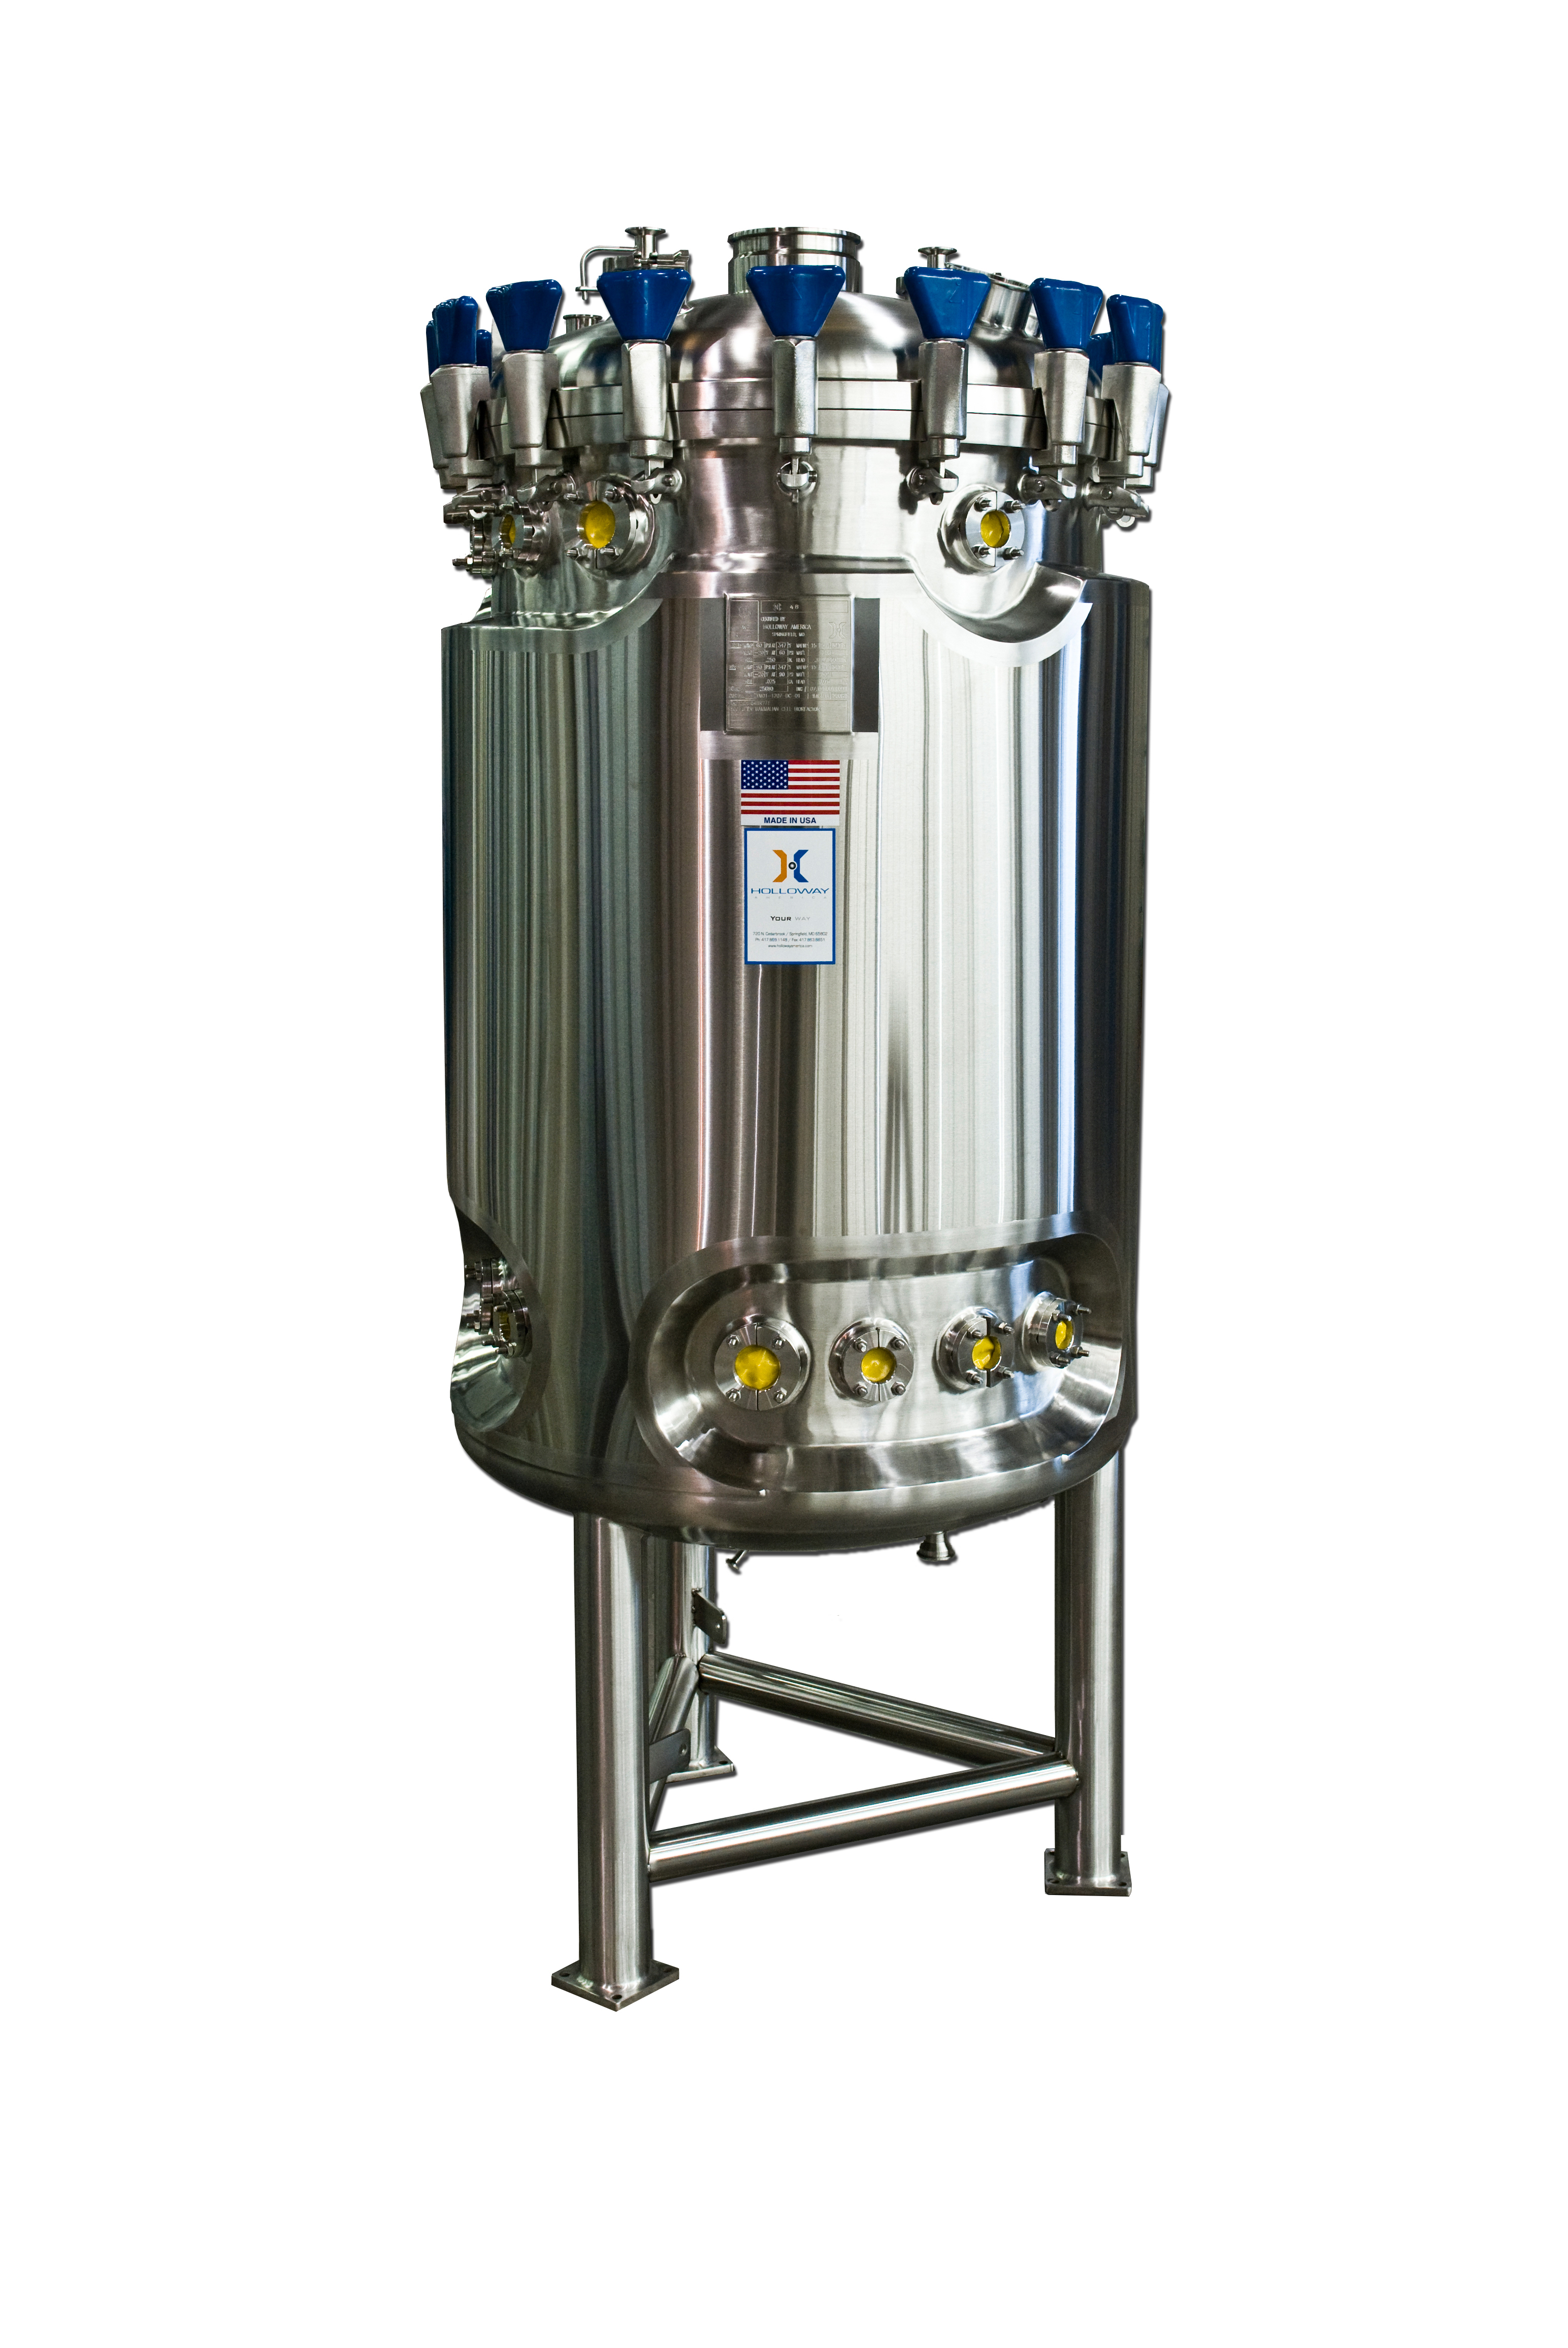 Stainless steel tanks and pressure vessels like this reactor pressure vessel set HOLLOWAY apart.